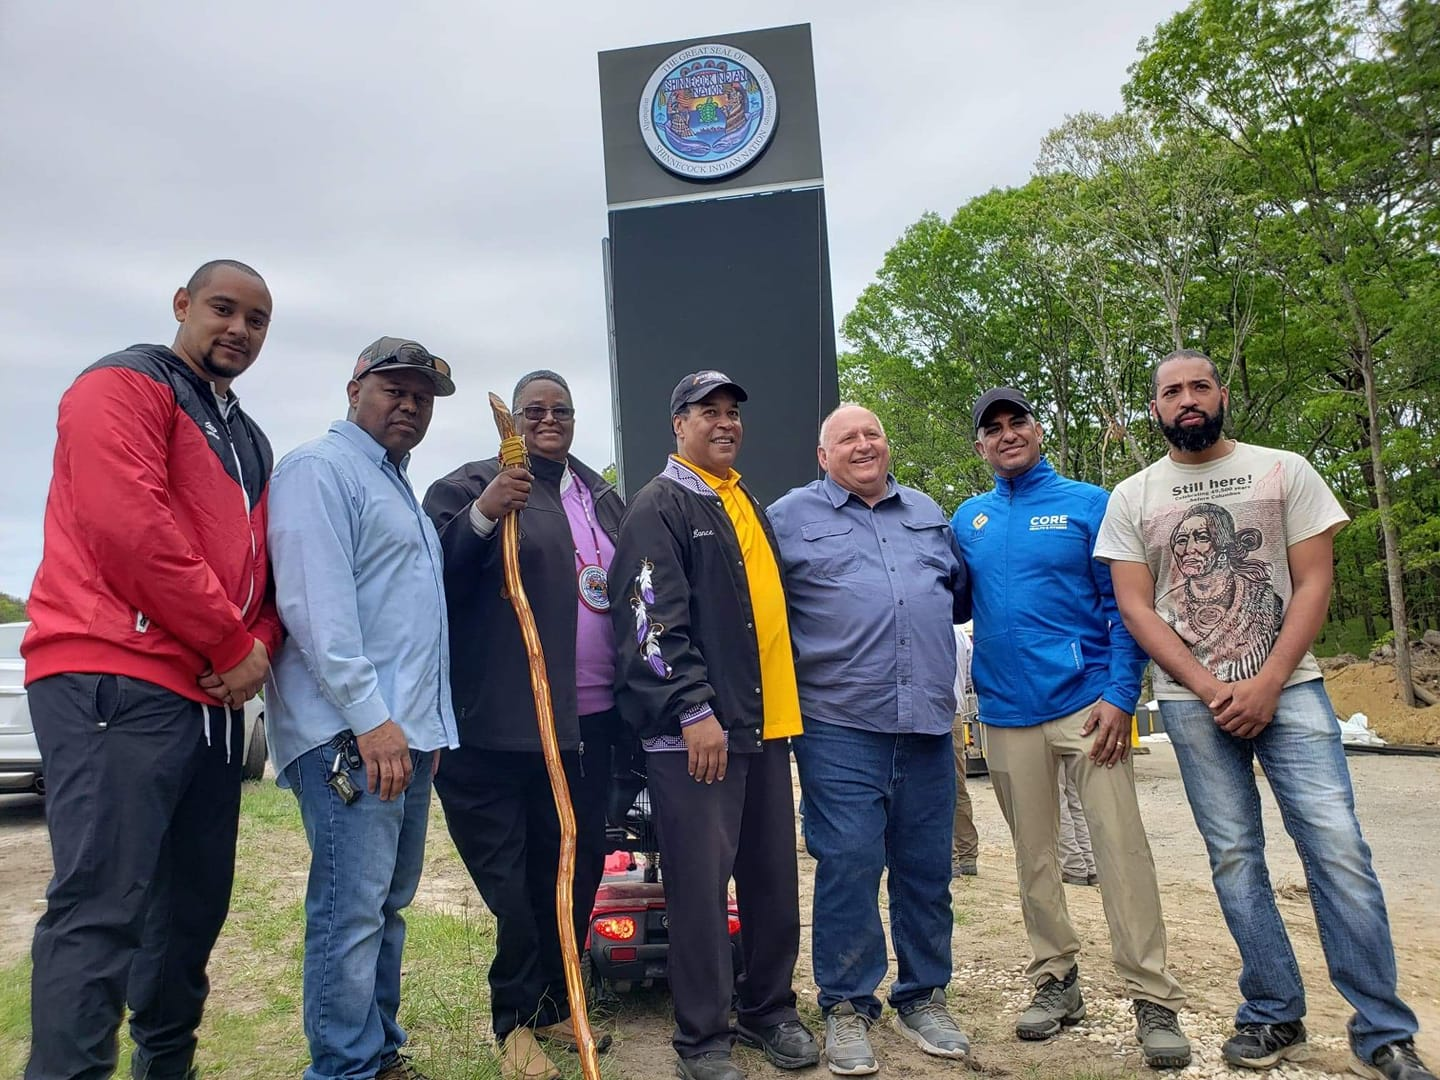 Shinnecock nation fights backlash from affluent for building